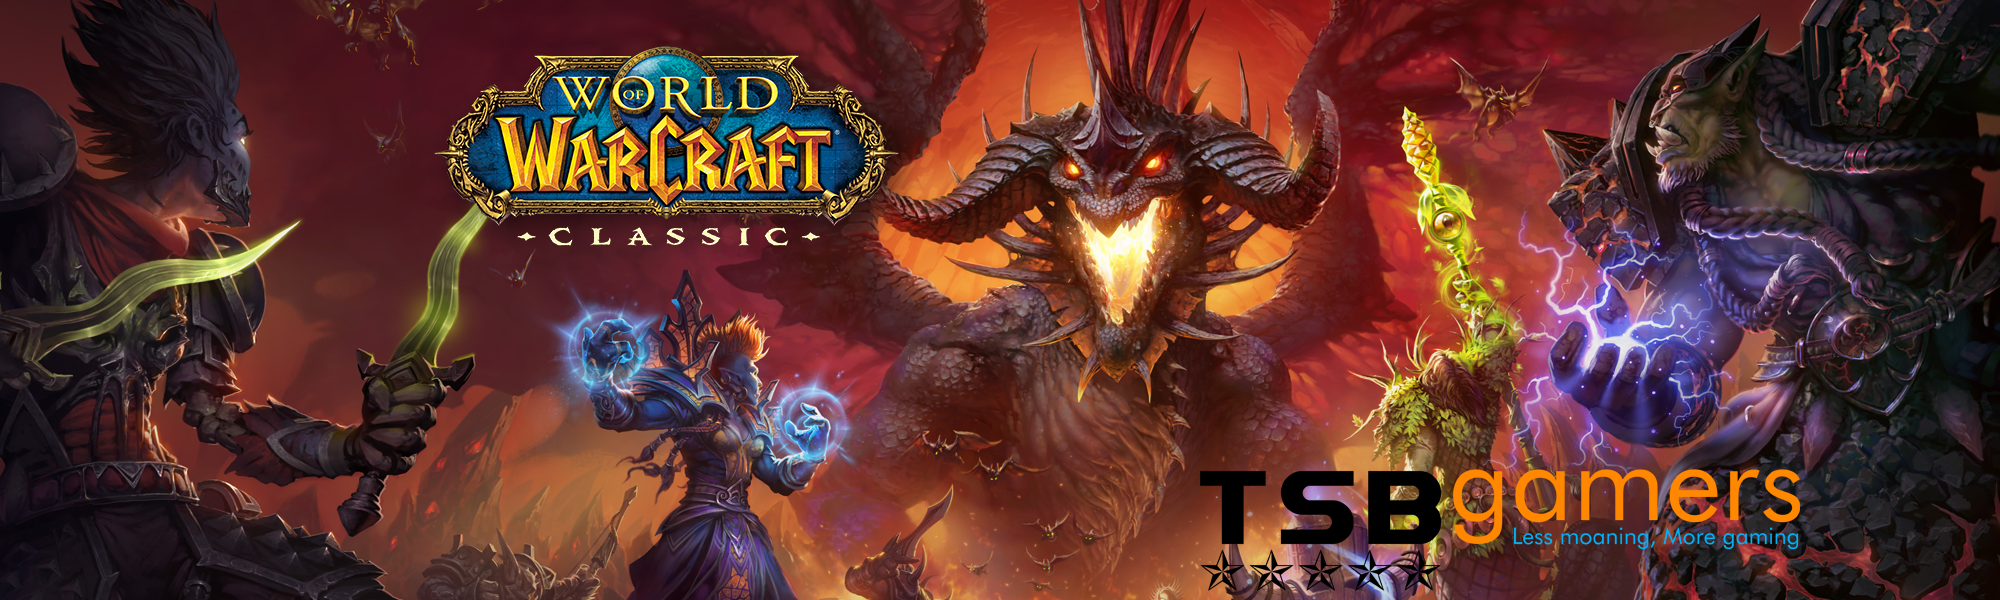 World of Warcraft Classic – WE WANT YOU!